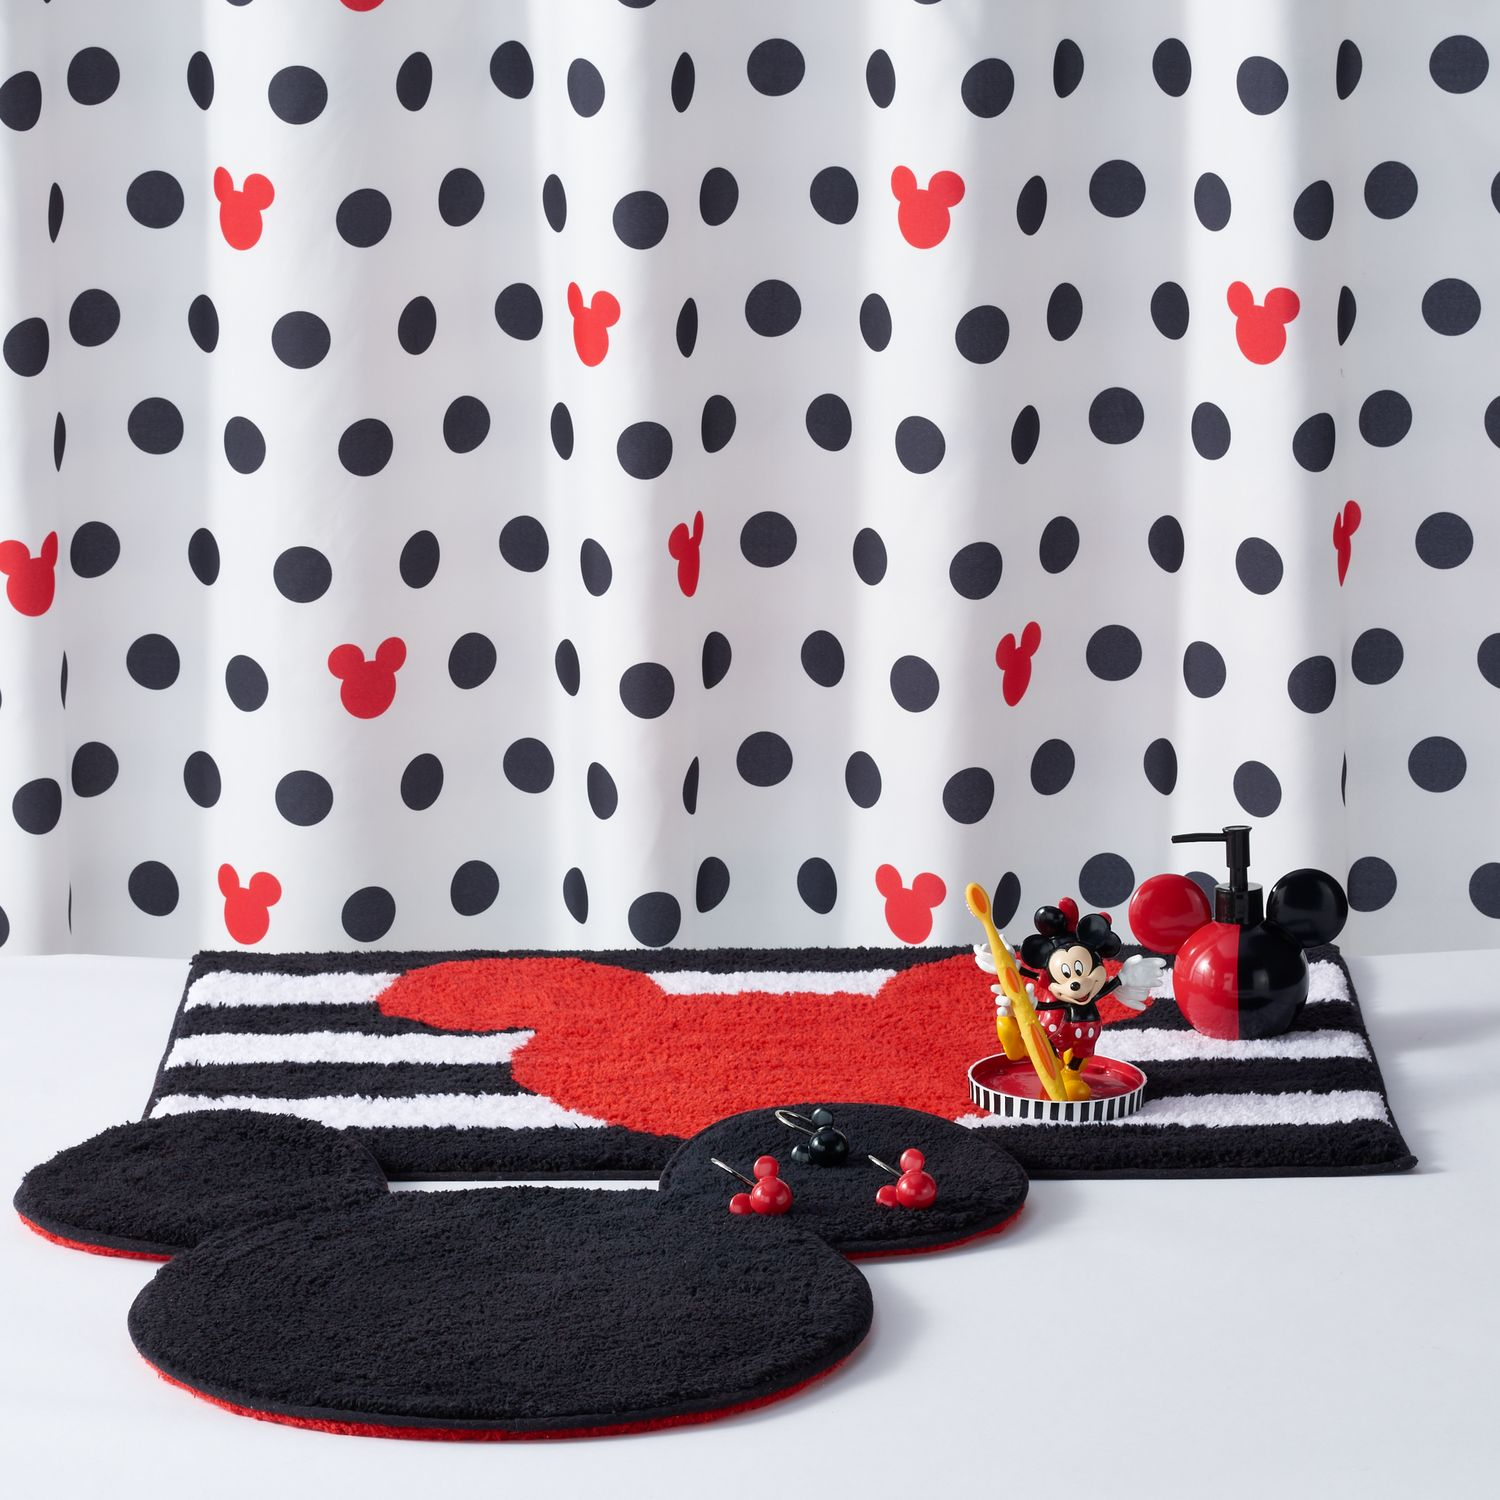 Disneyu0027s Mickey U0026 Minnie Mouse Bath Accessories Collection